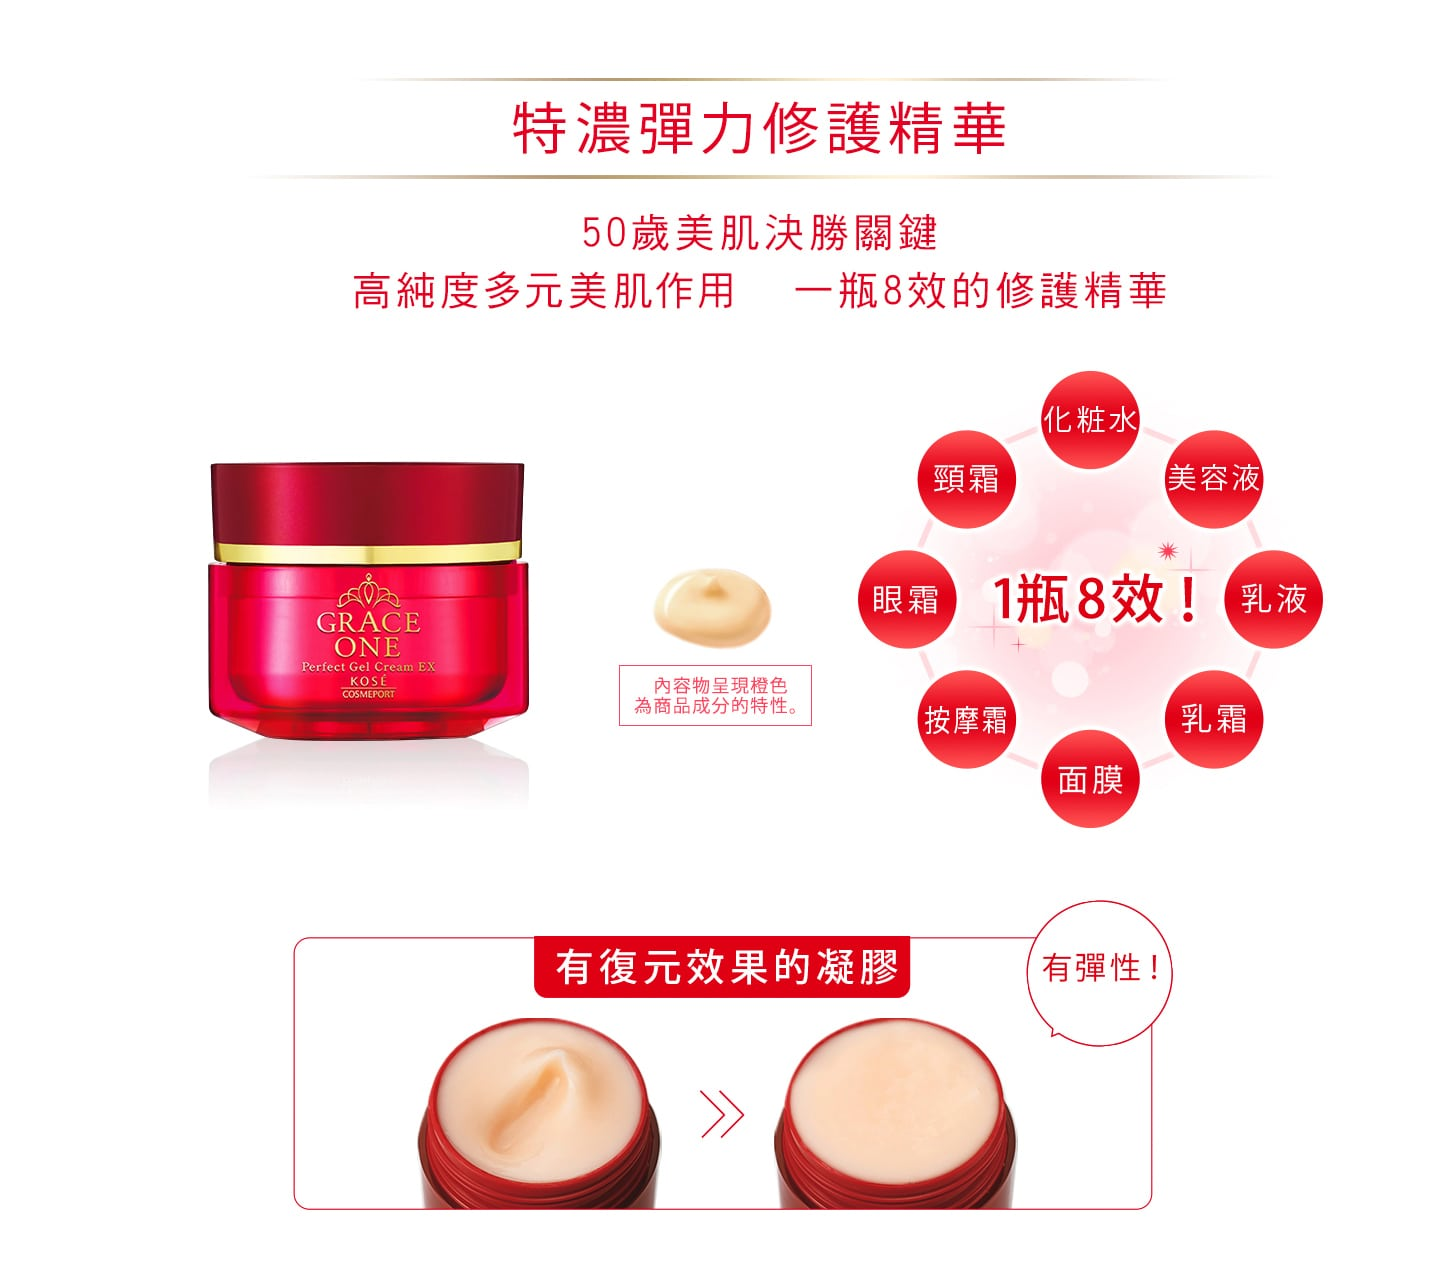 Grace One Perfect Gel Cream EX - Feature 2